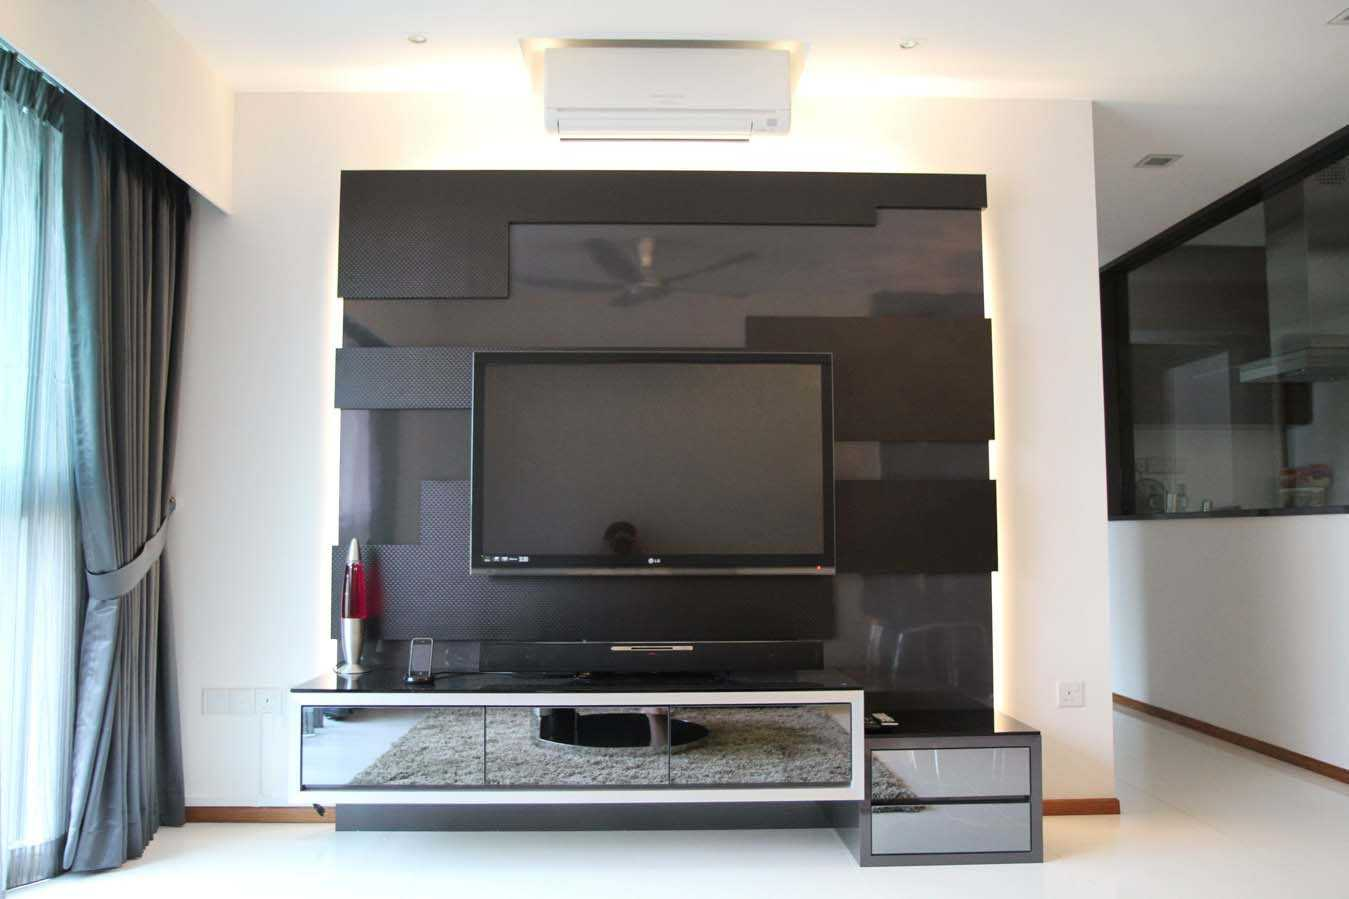 20 Modern Tv Unit Design Ideas For Bedroom Living Room: dresser designs for small space